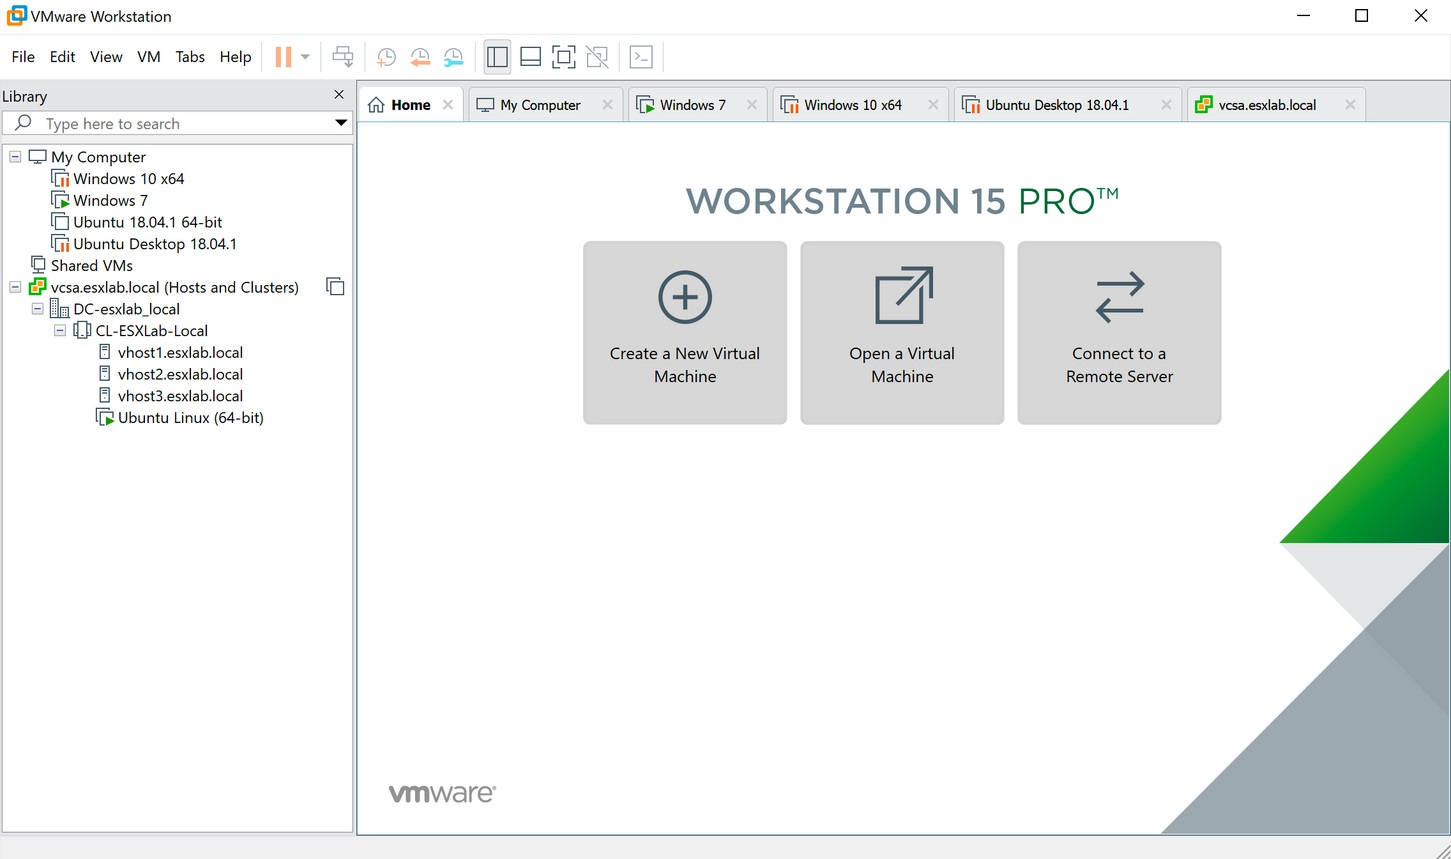 vmware workstation 15 user interface